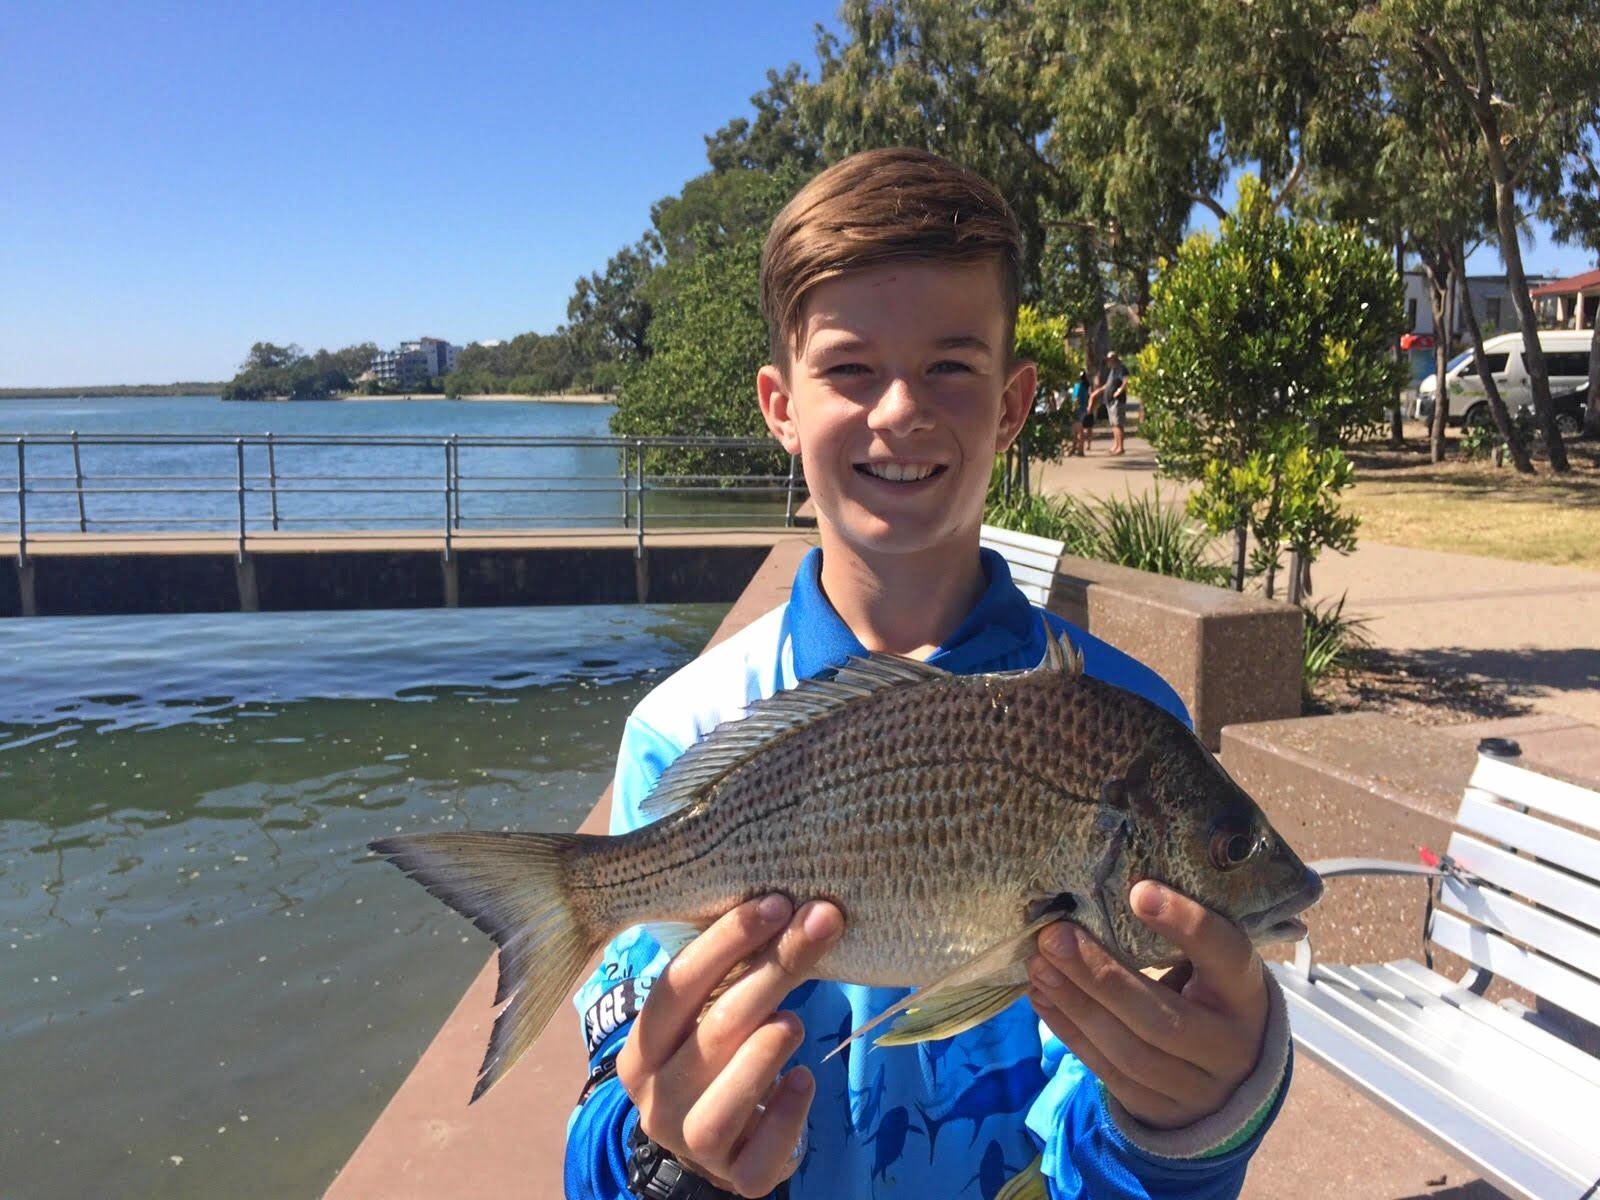 BIG BREAM: Isaac Waller shows off his great 33cm bream taken around Chambers Island.